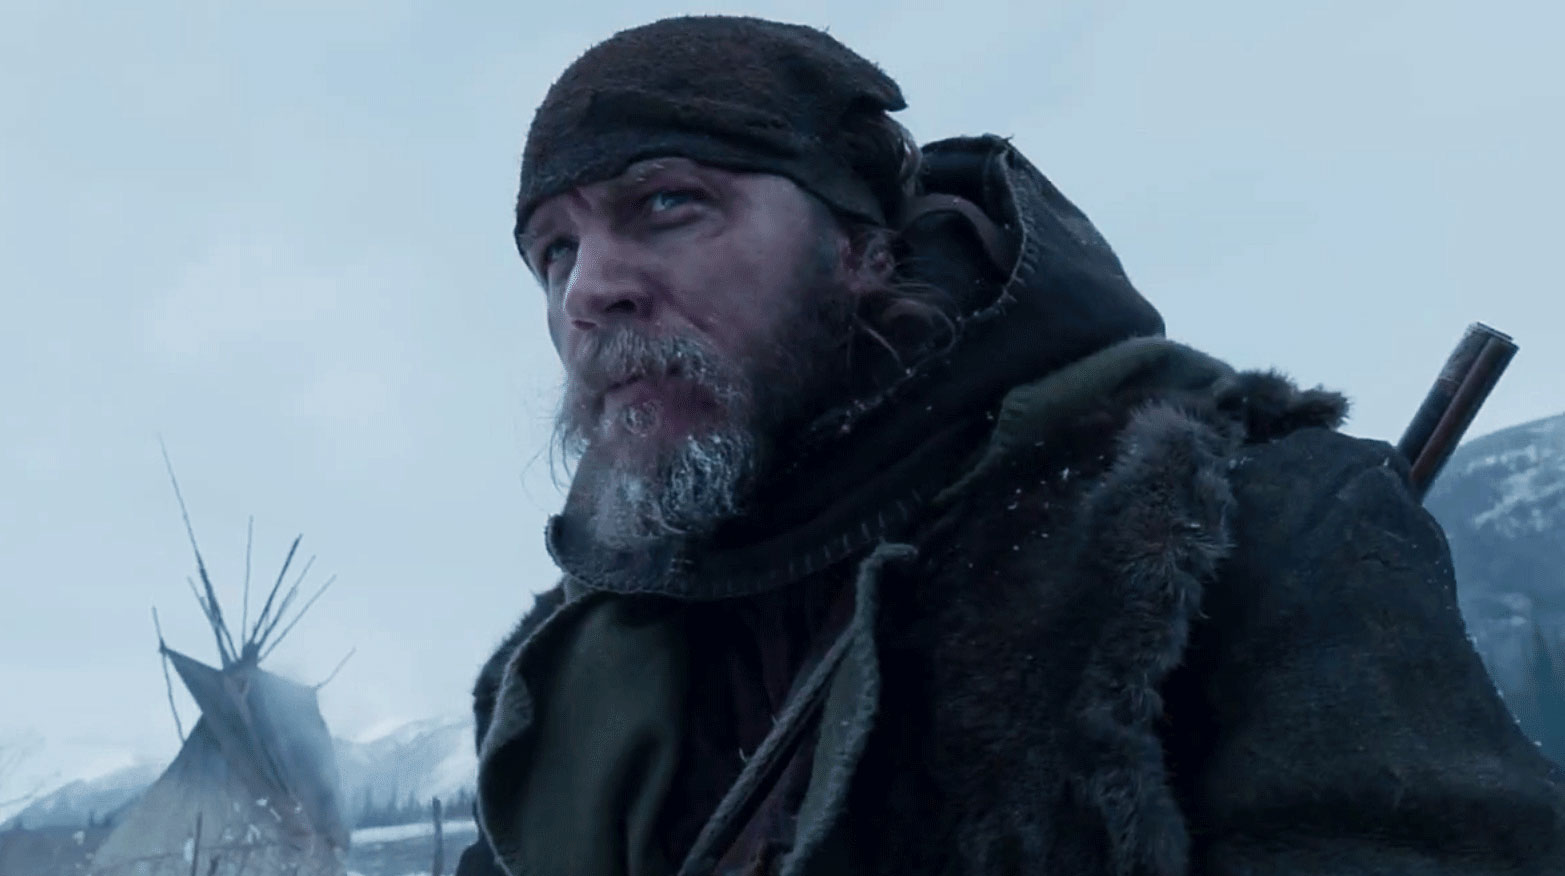 Tom Hardy as John Fitzgerald in Iñárritu's The Revenant, 2015